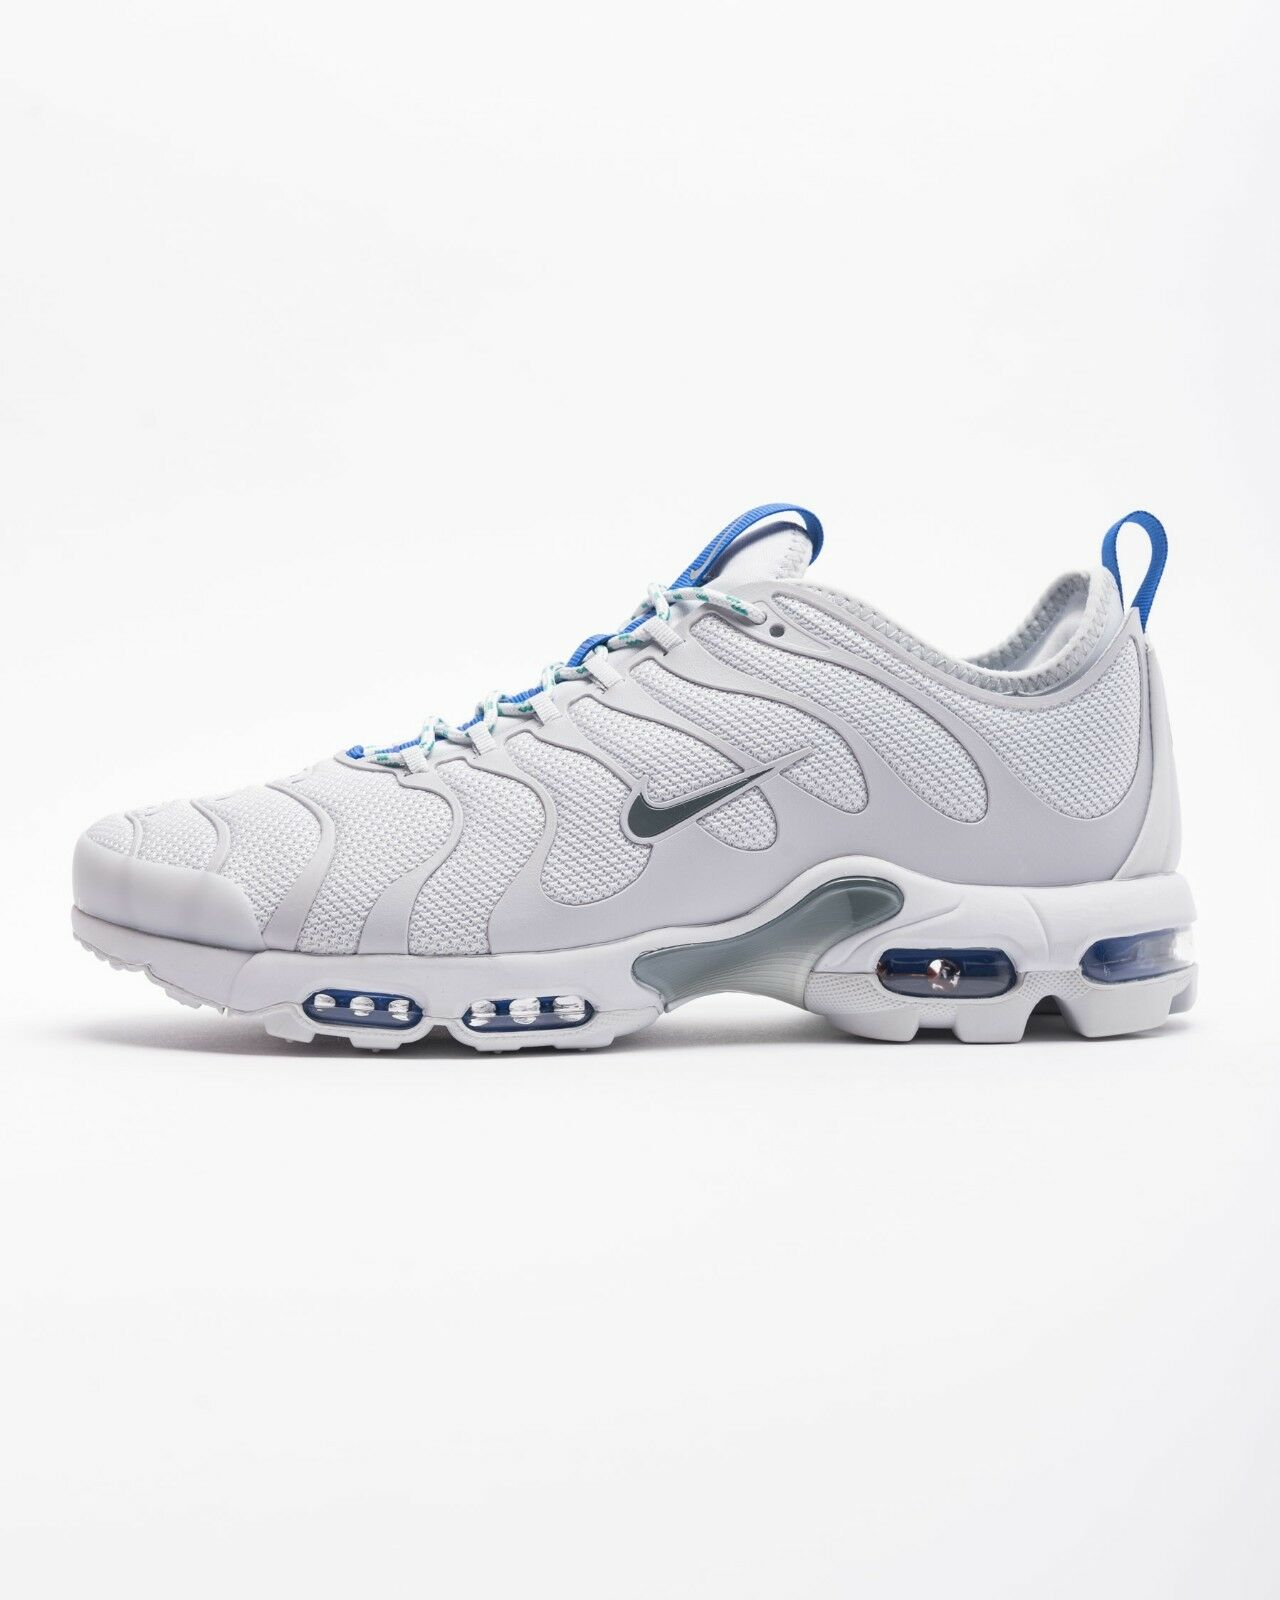 Nike Air Max Hommes Plus TN Ultra Sneaker Hommes Max Lifestyle Chaussures 001d90